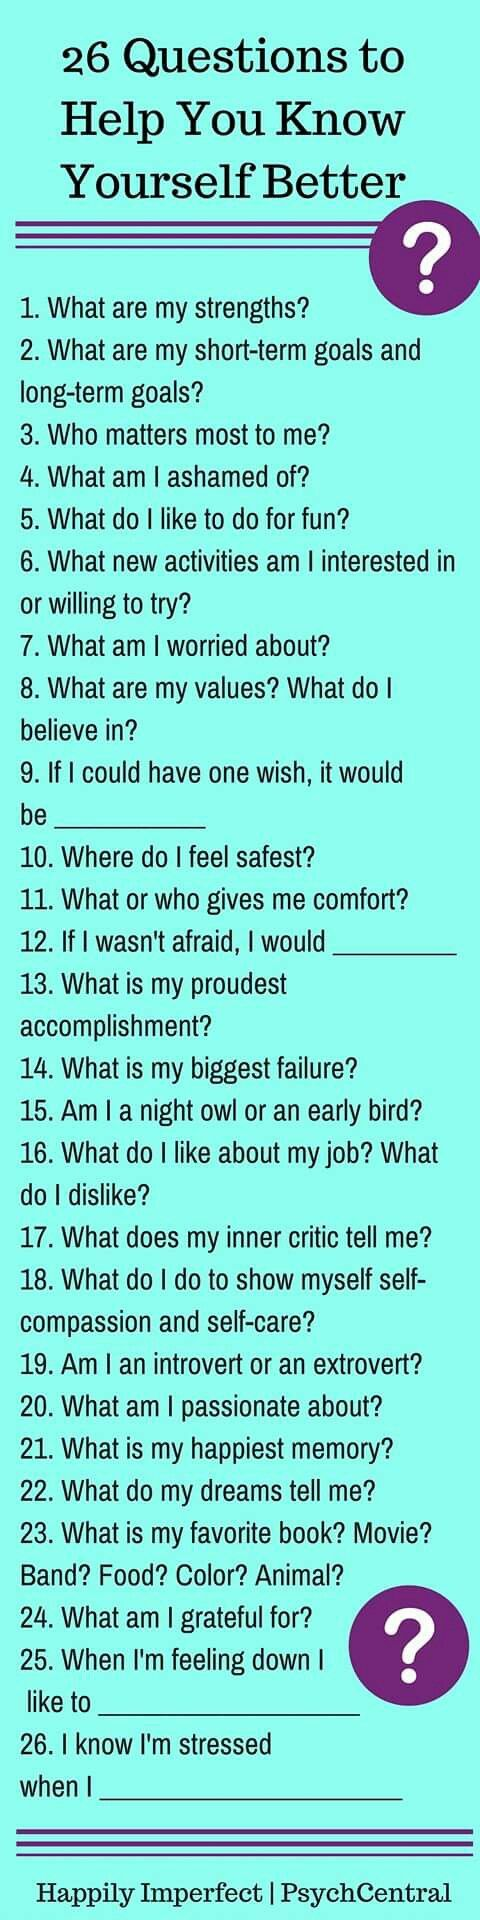 Therapist questionnaire